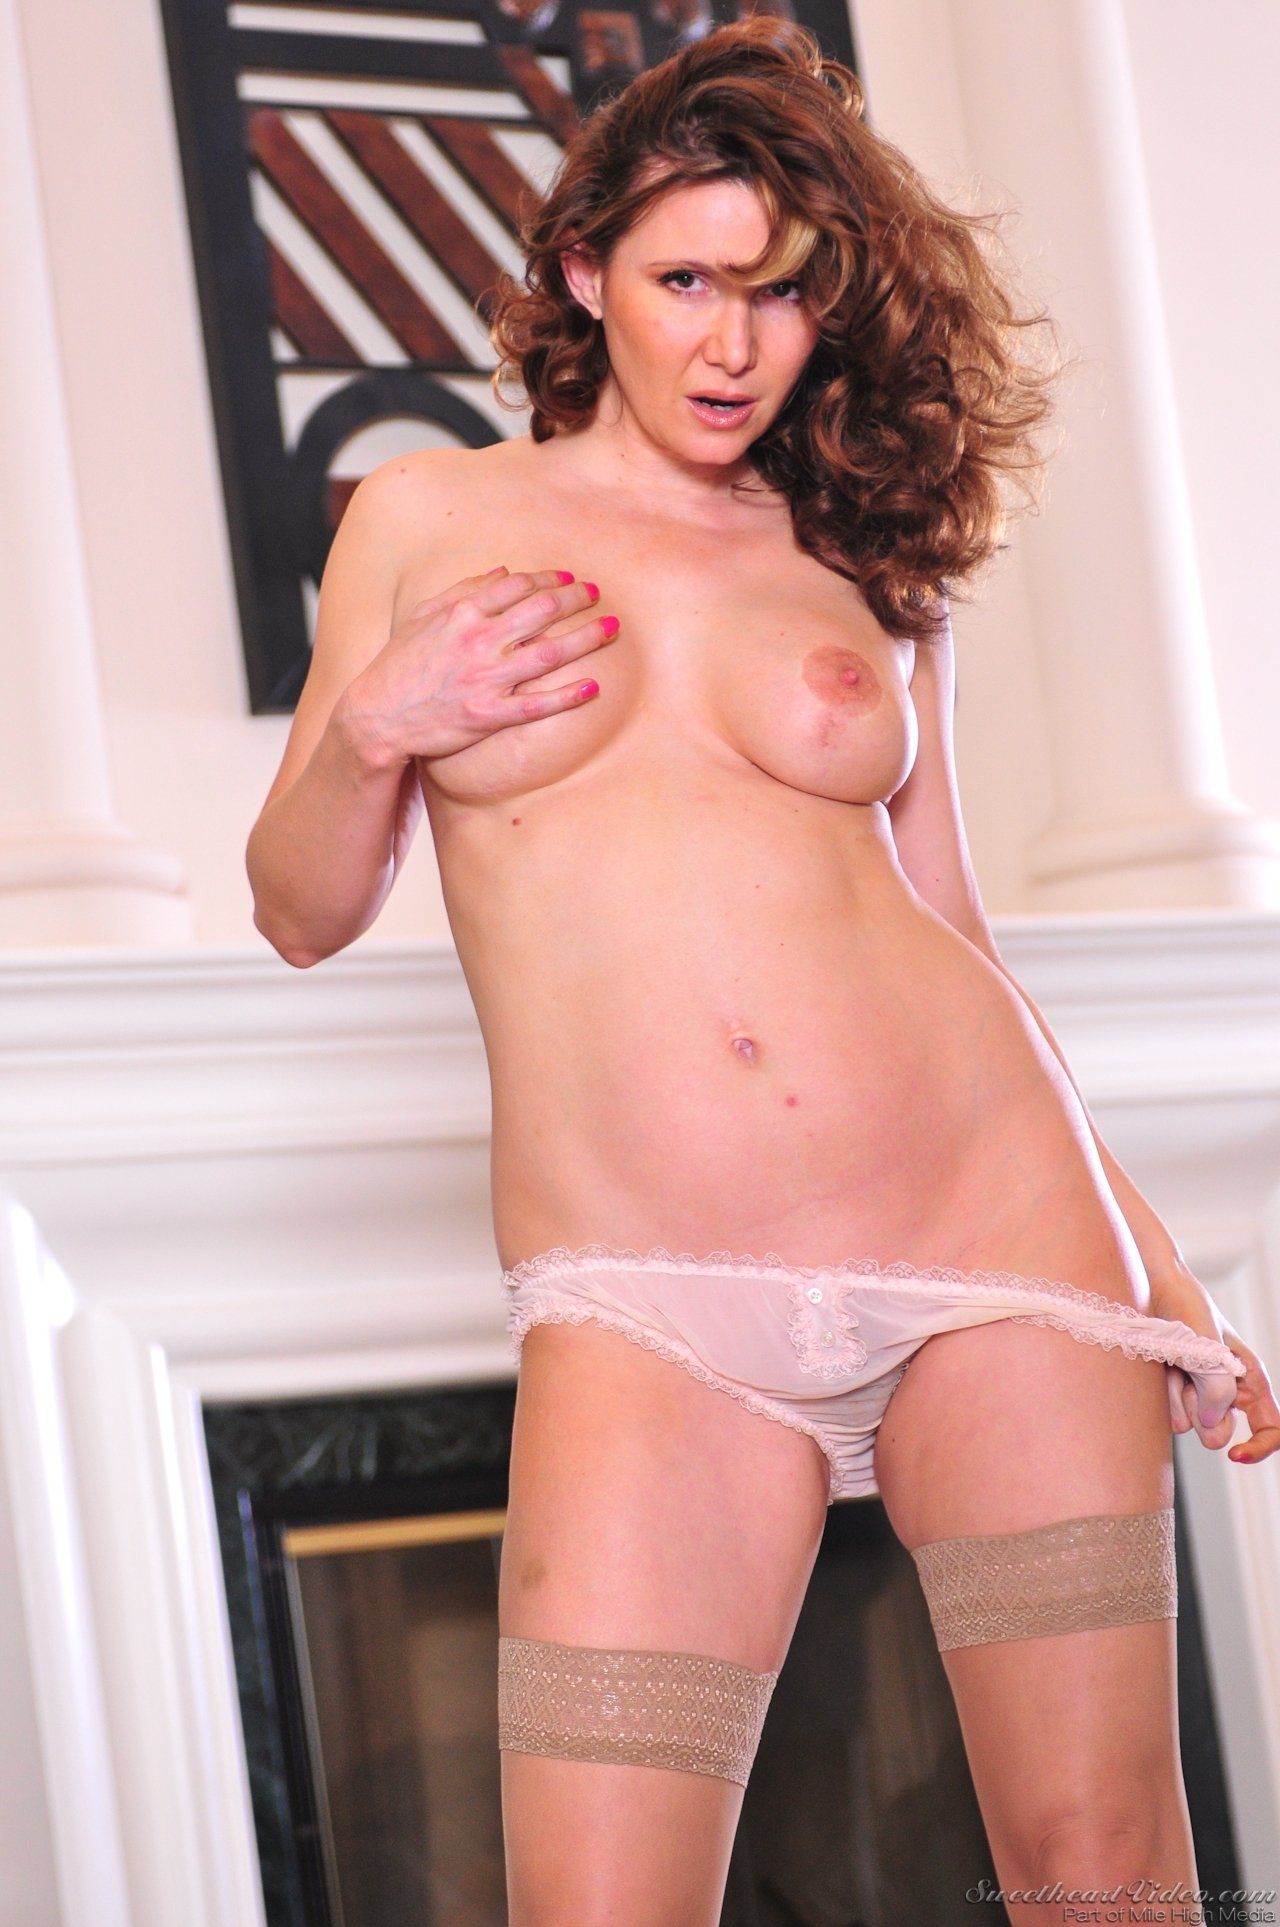 Mature women undressing pics #11